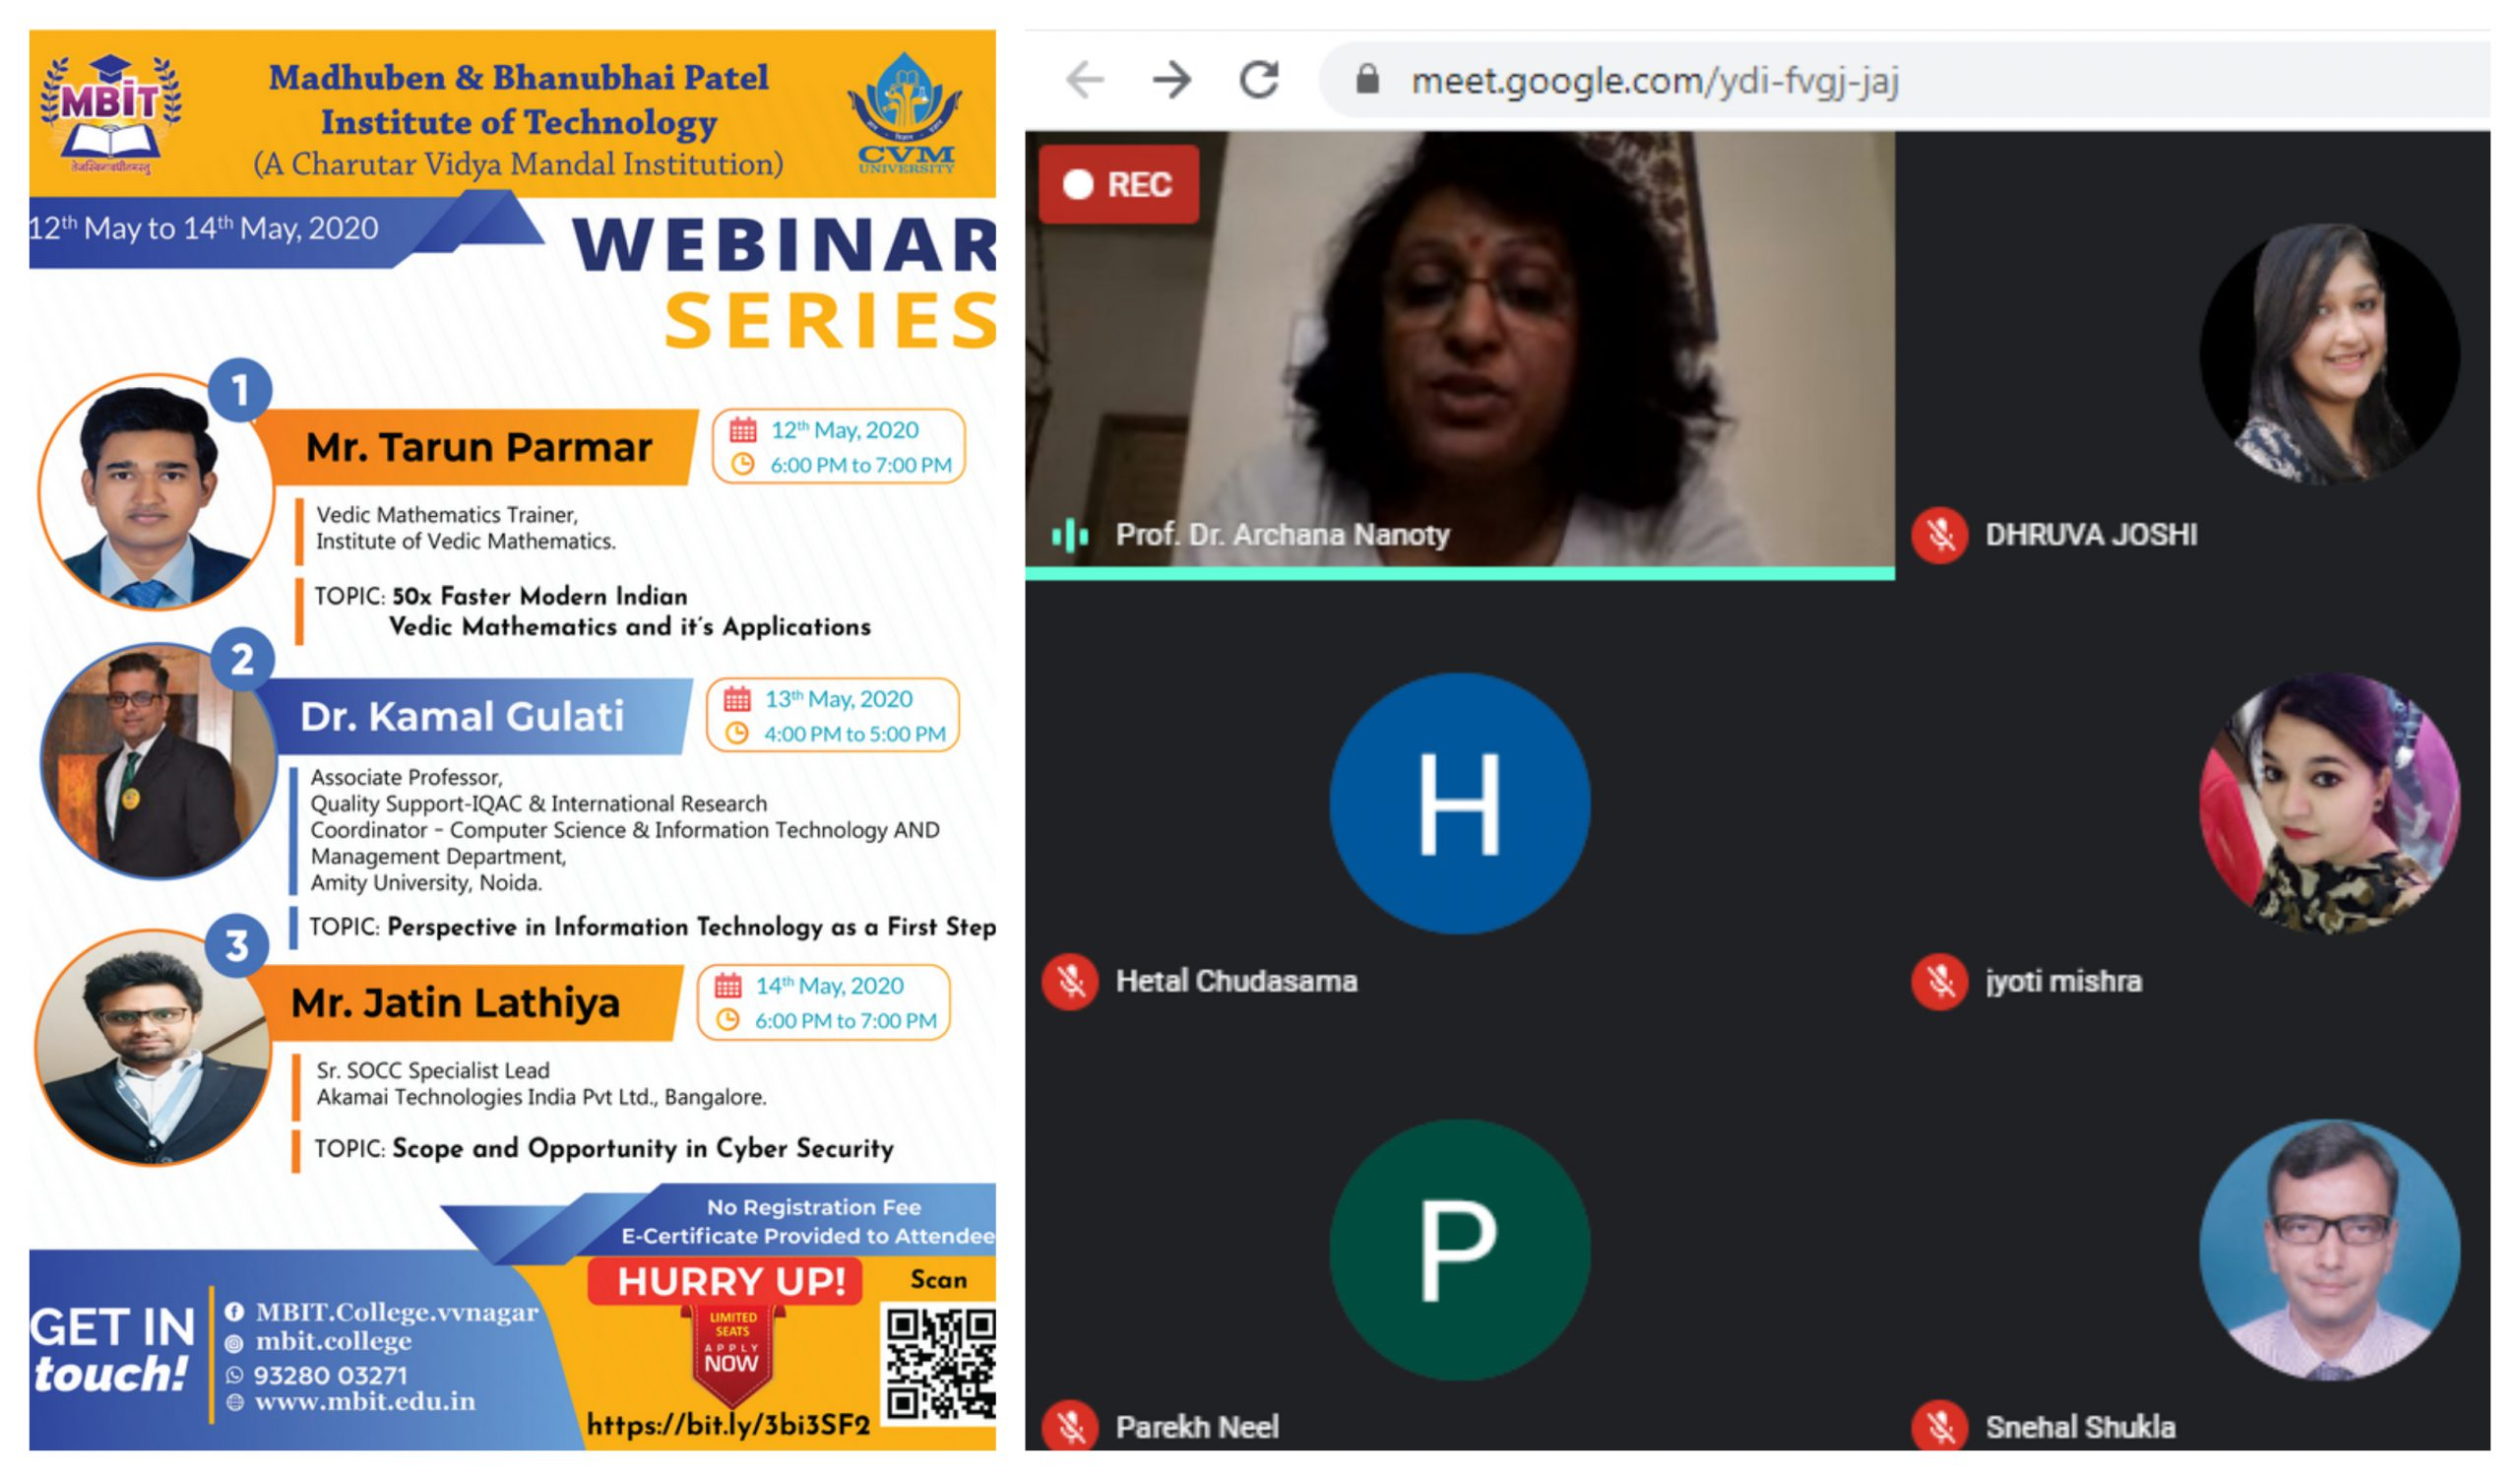 Series of Webinar organized during 12th May 2020 to 14th May 2020